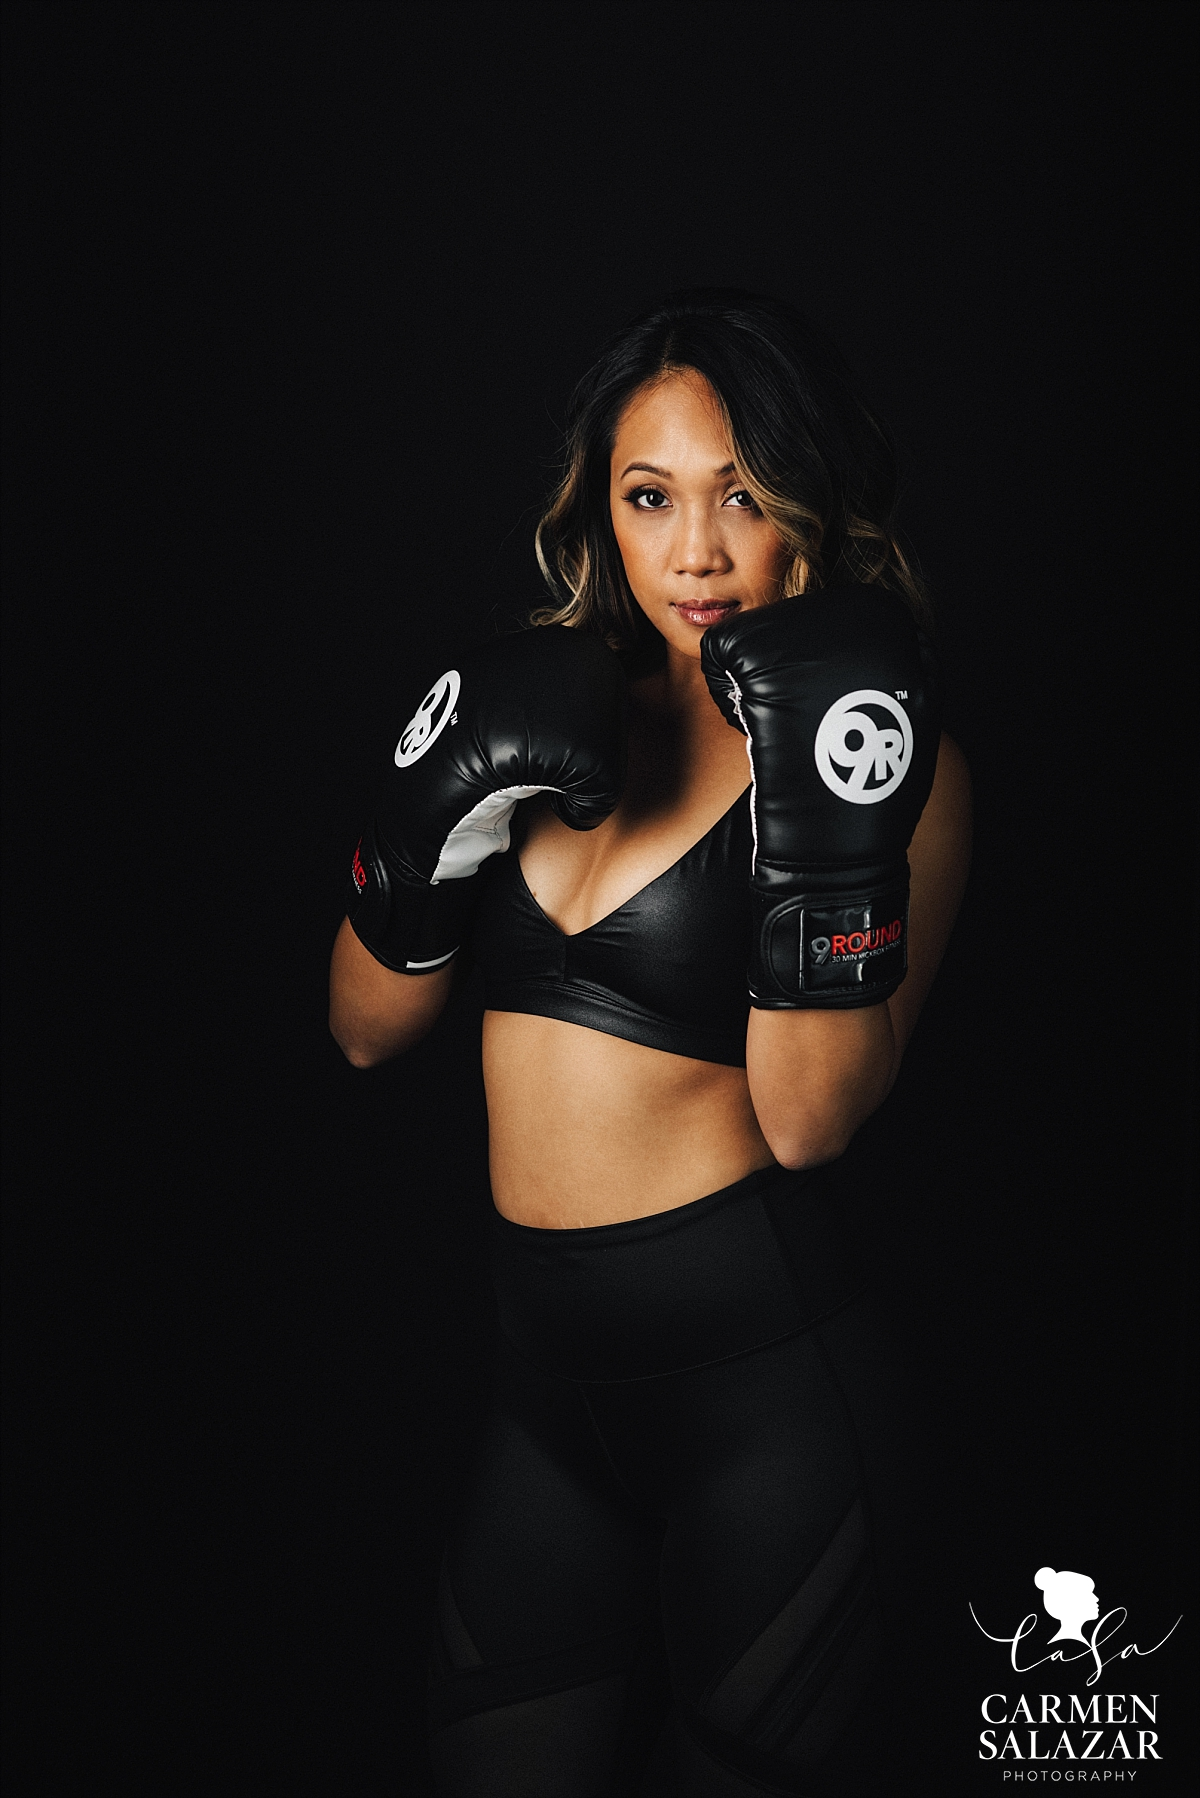 Female boxing fitness portraits - Carmen Salazar